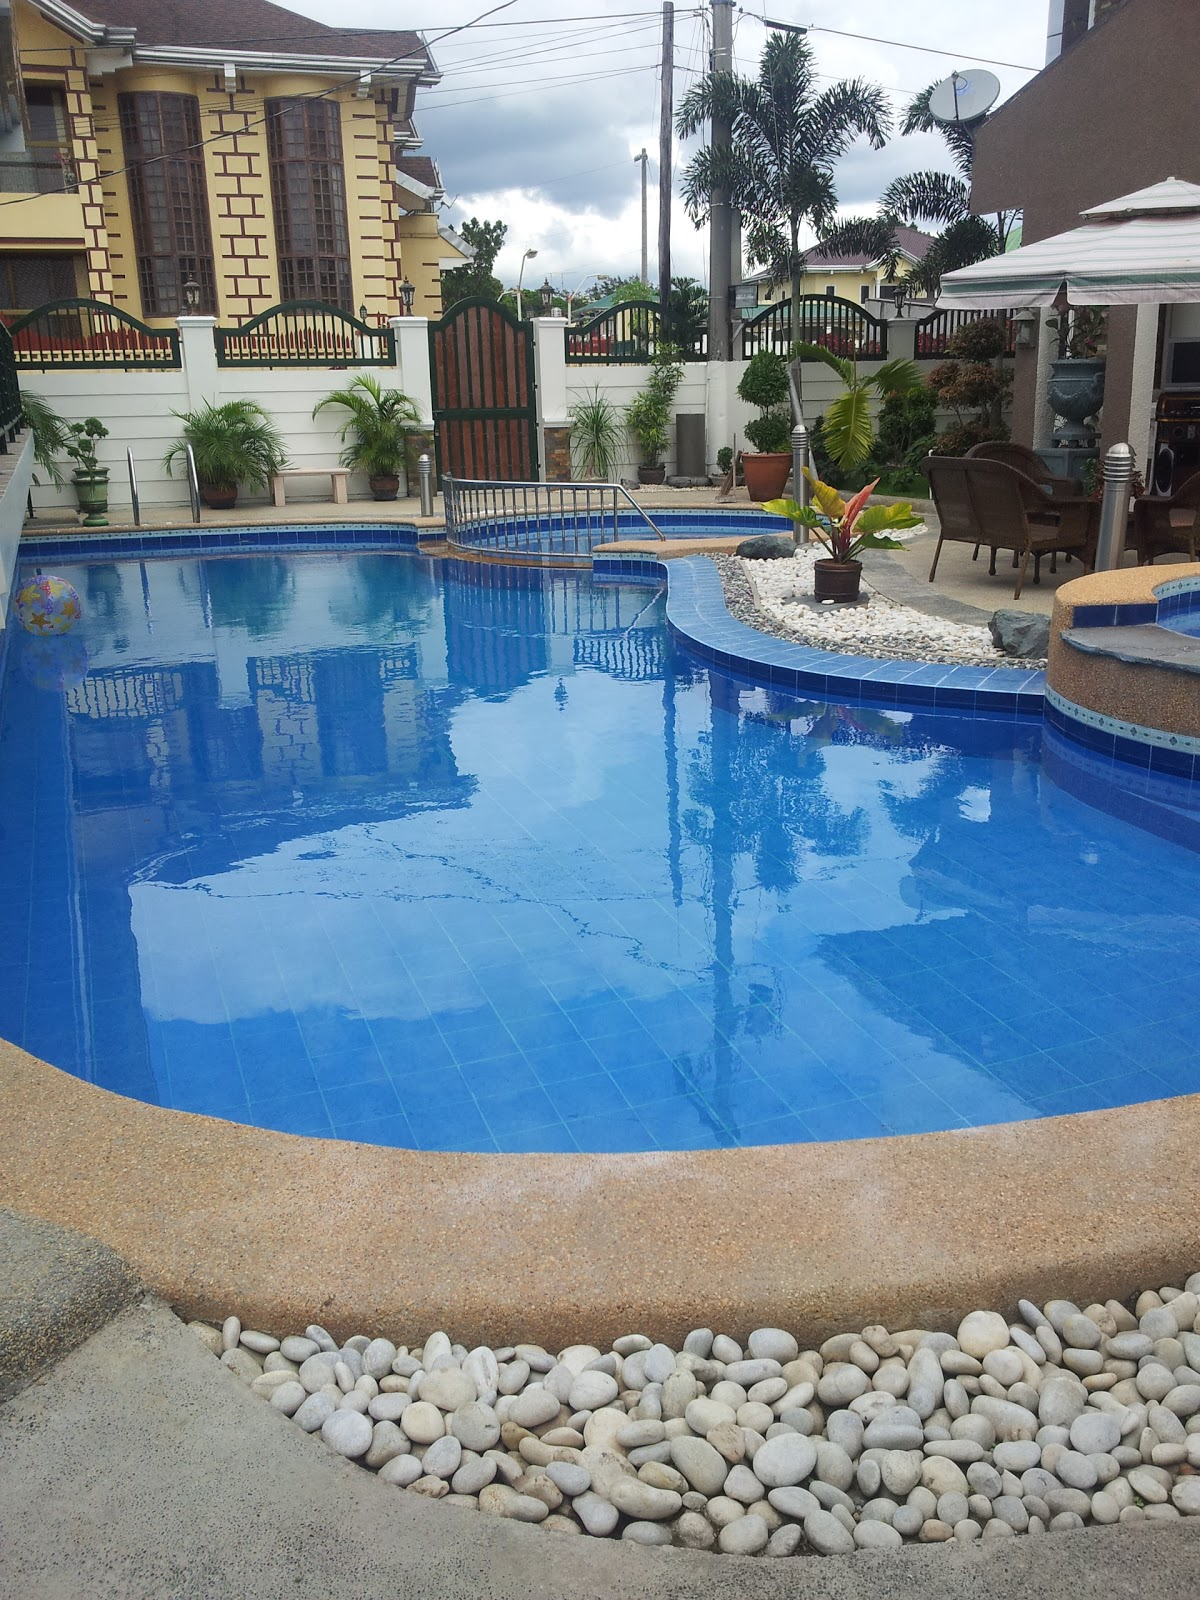 Jr pool swimming pool construction maintenance and repair - Bobs swimming pool service and repair ...